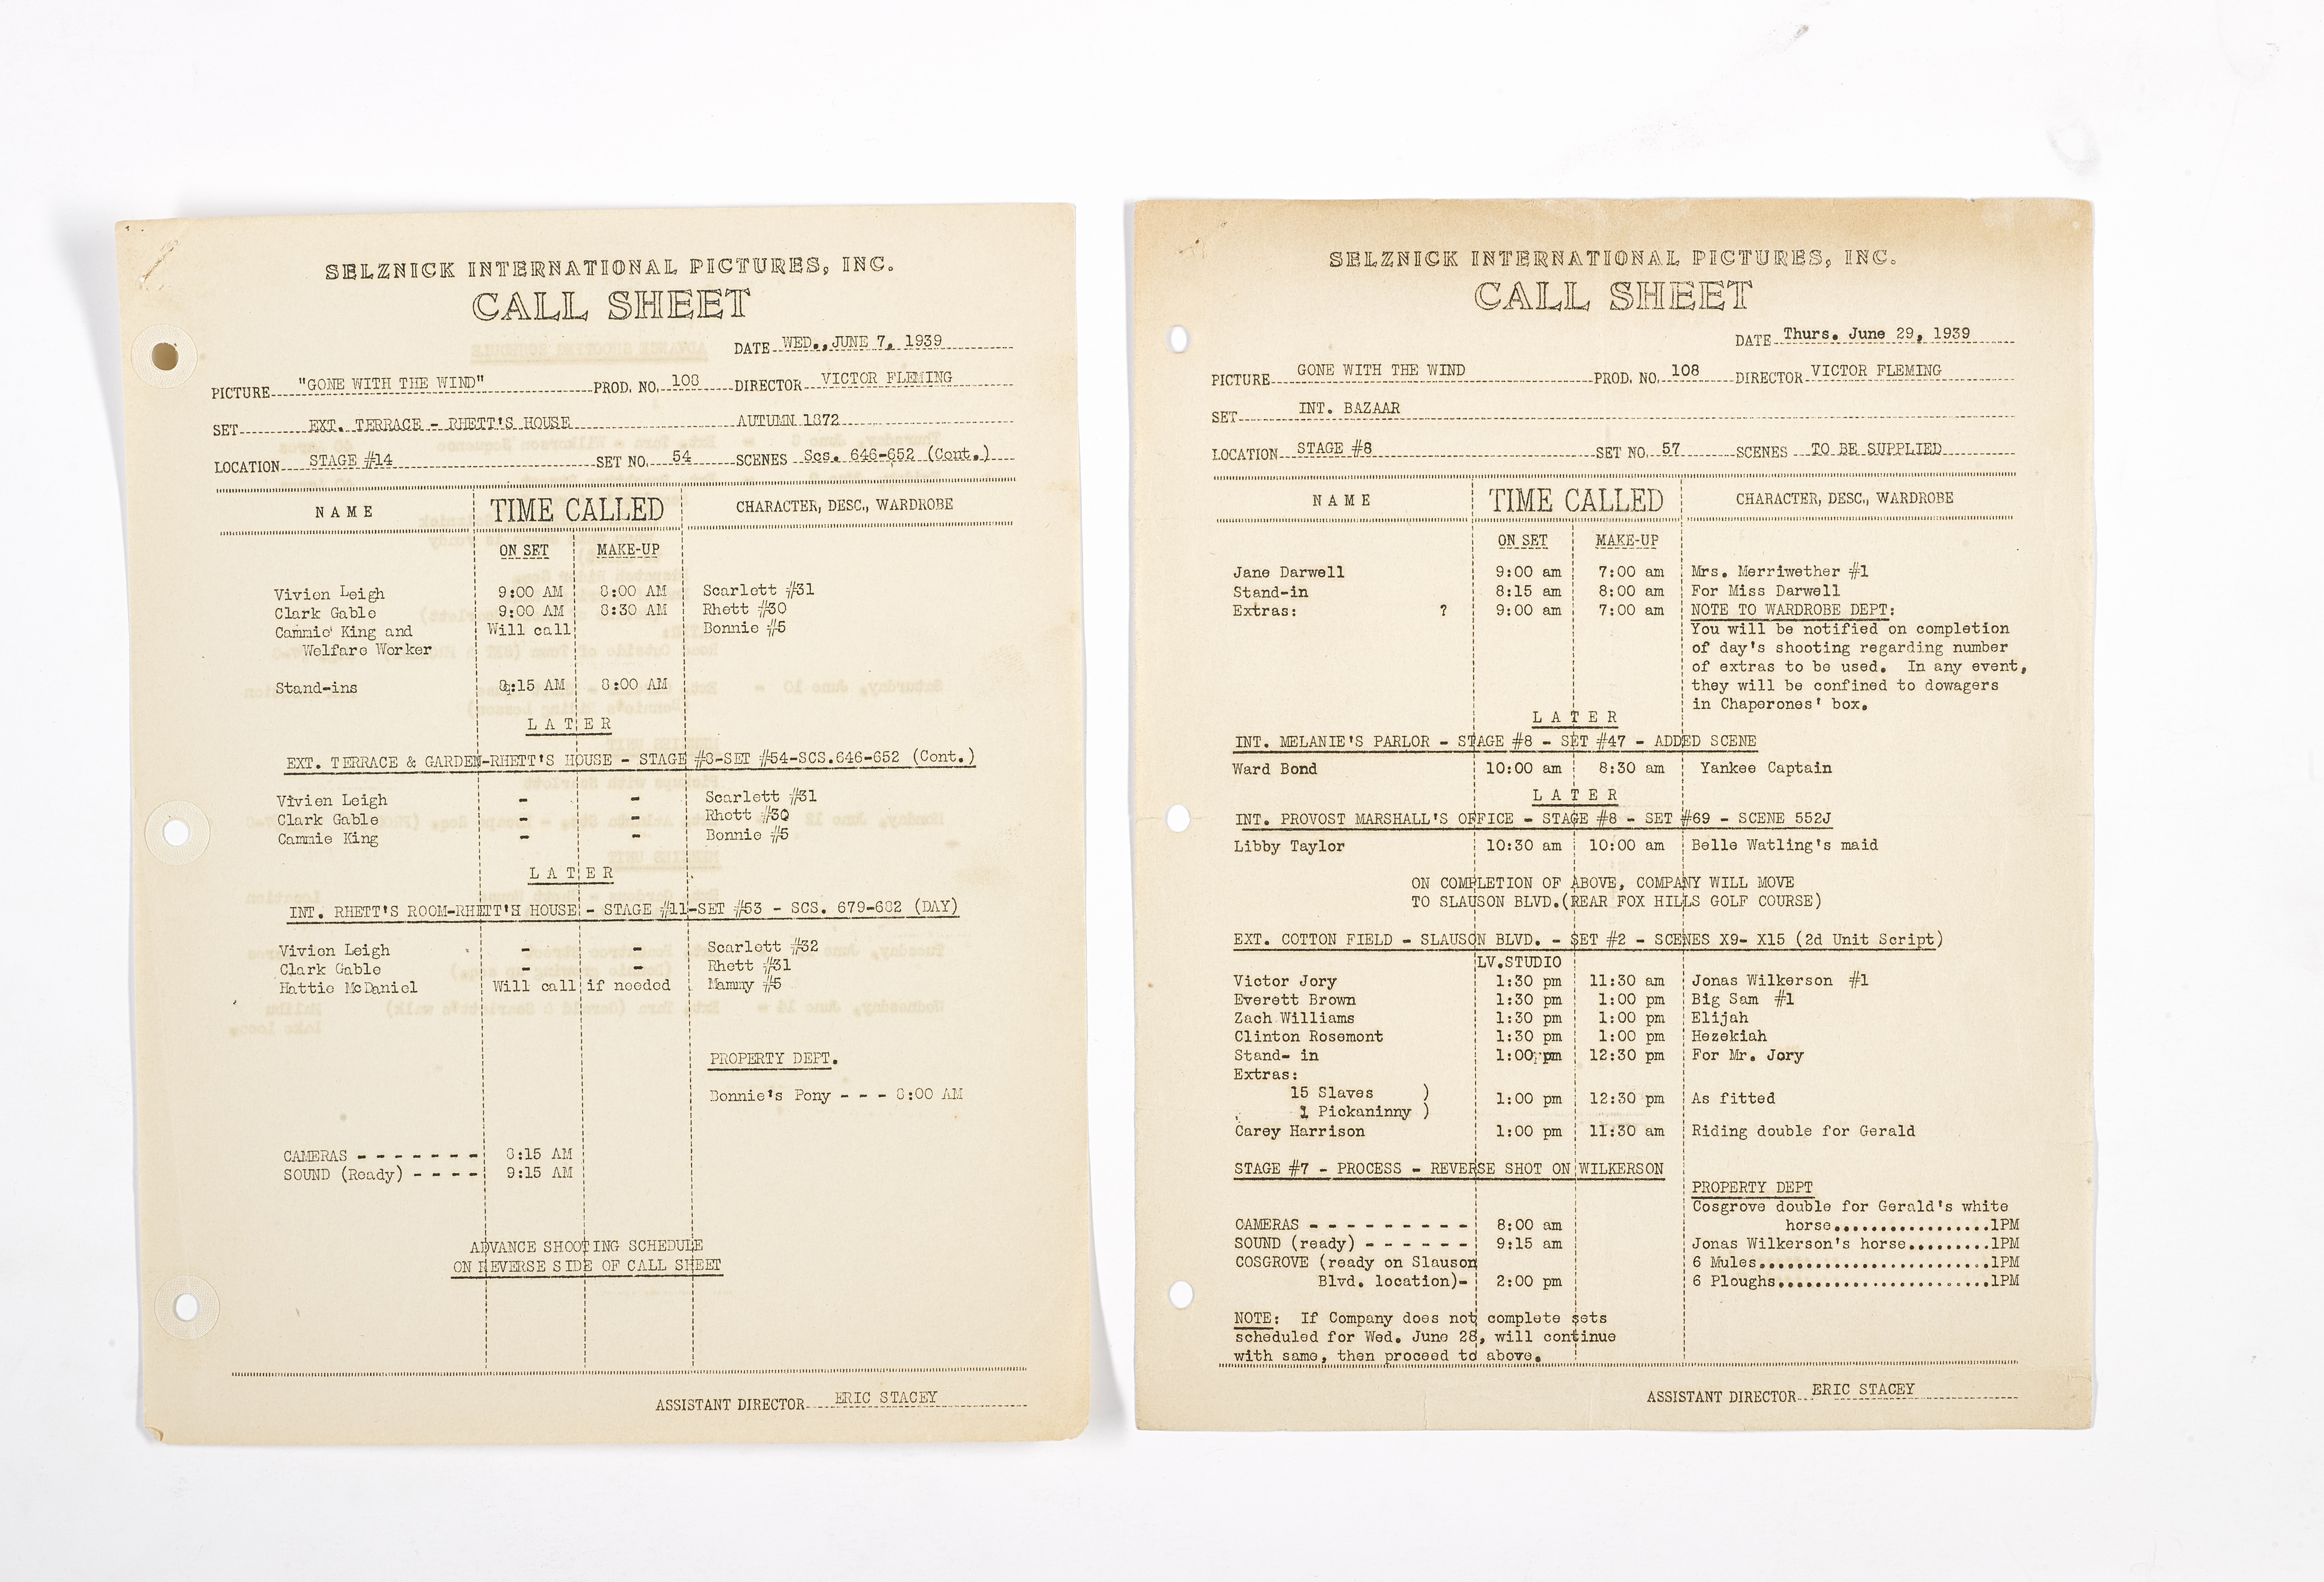 A Gone With the Wind pair of production call sheets